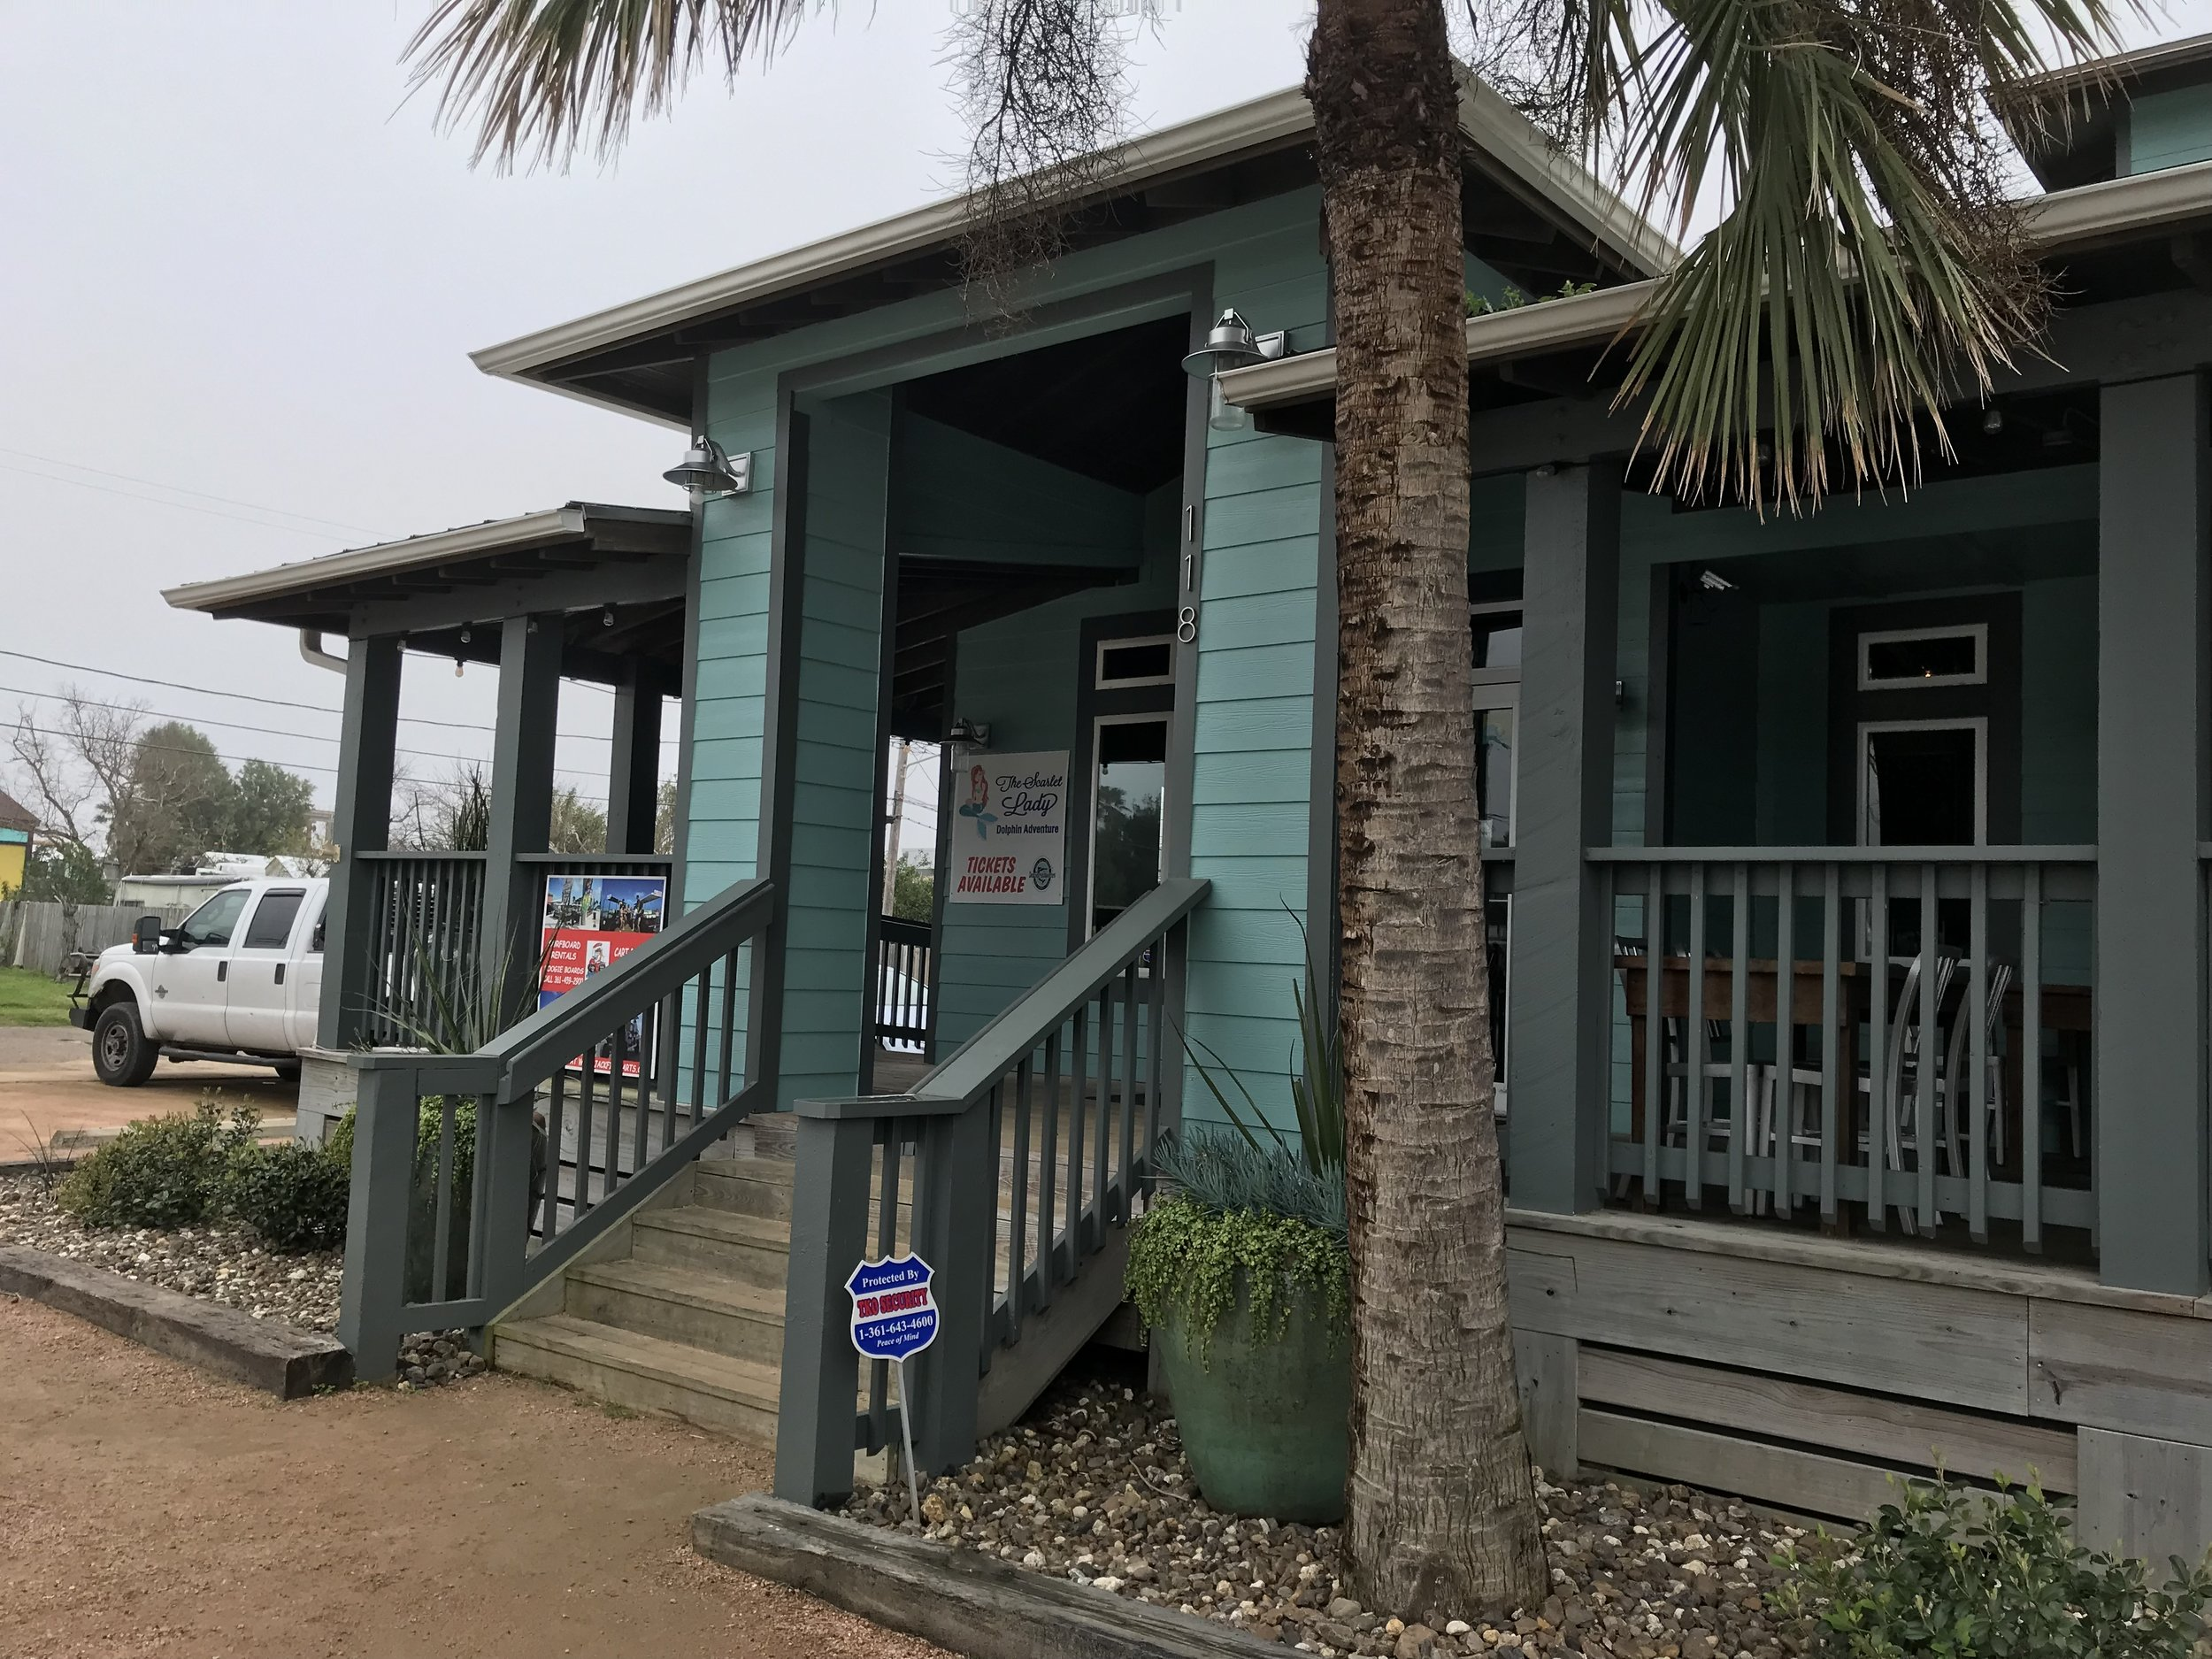 MacDaddy's, tasty food for lunch in Port Aransas.